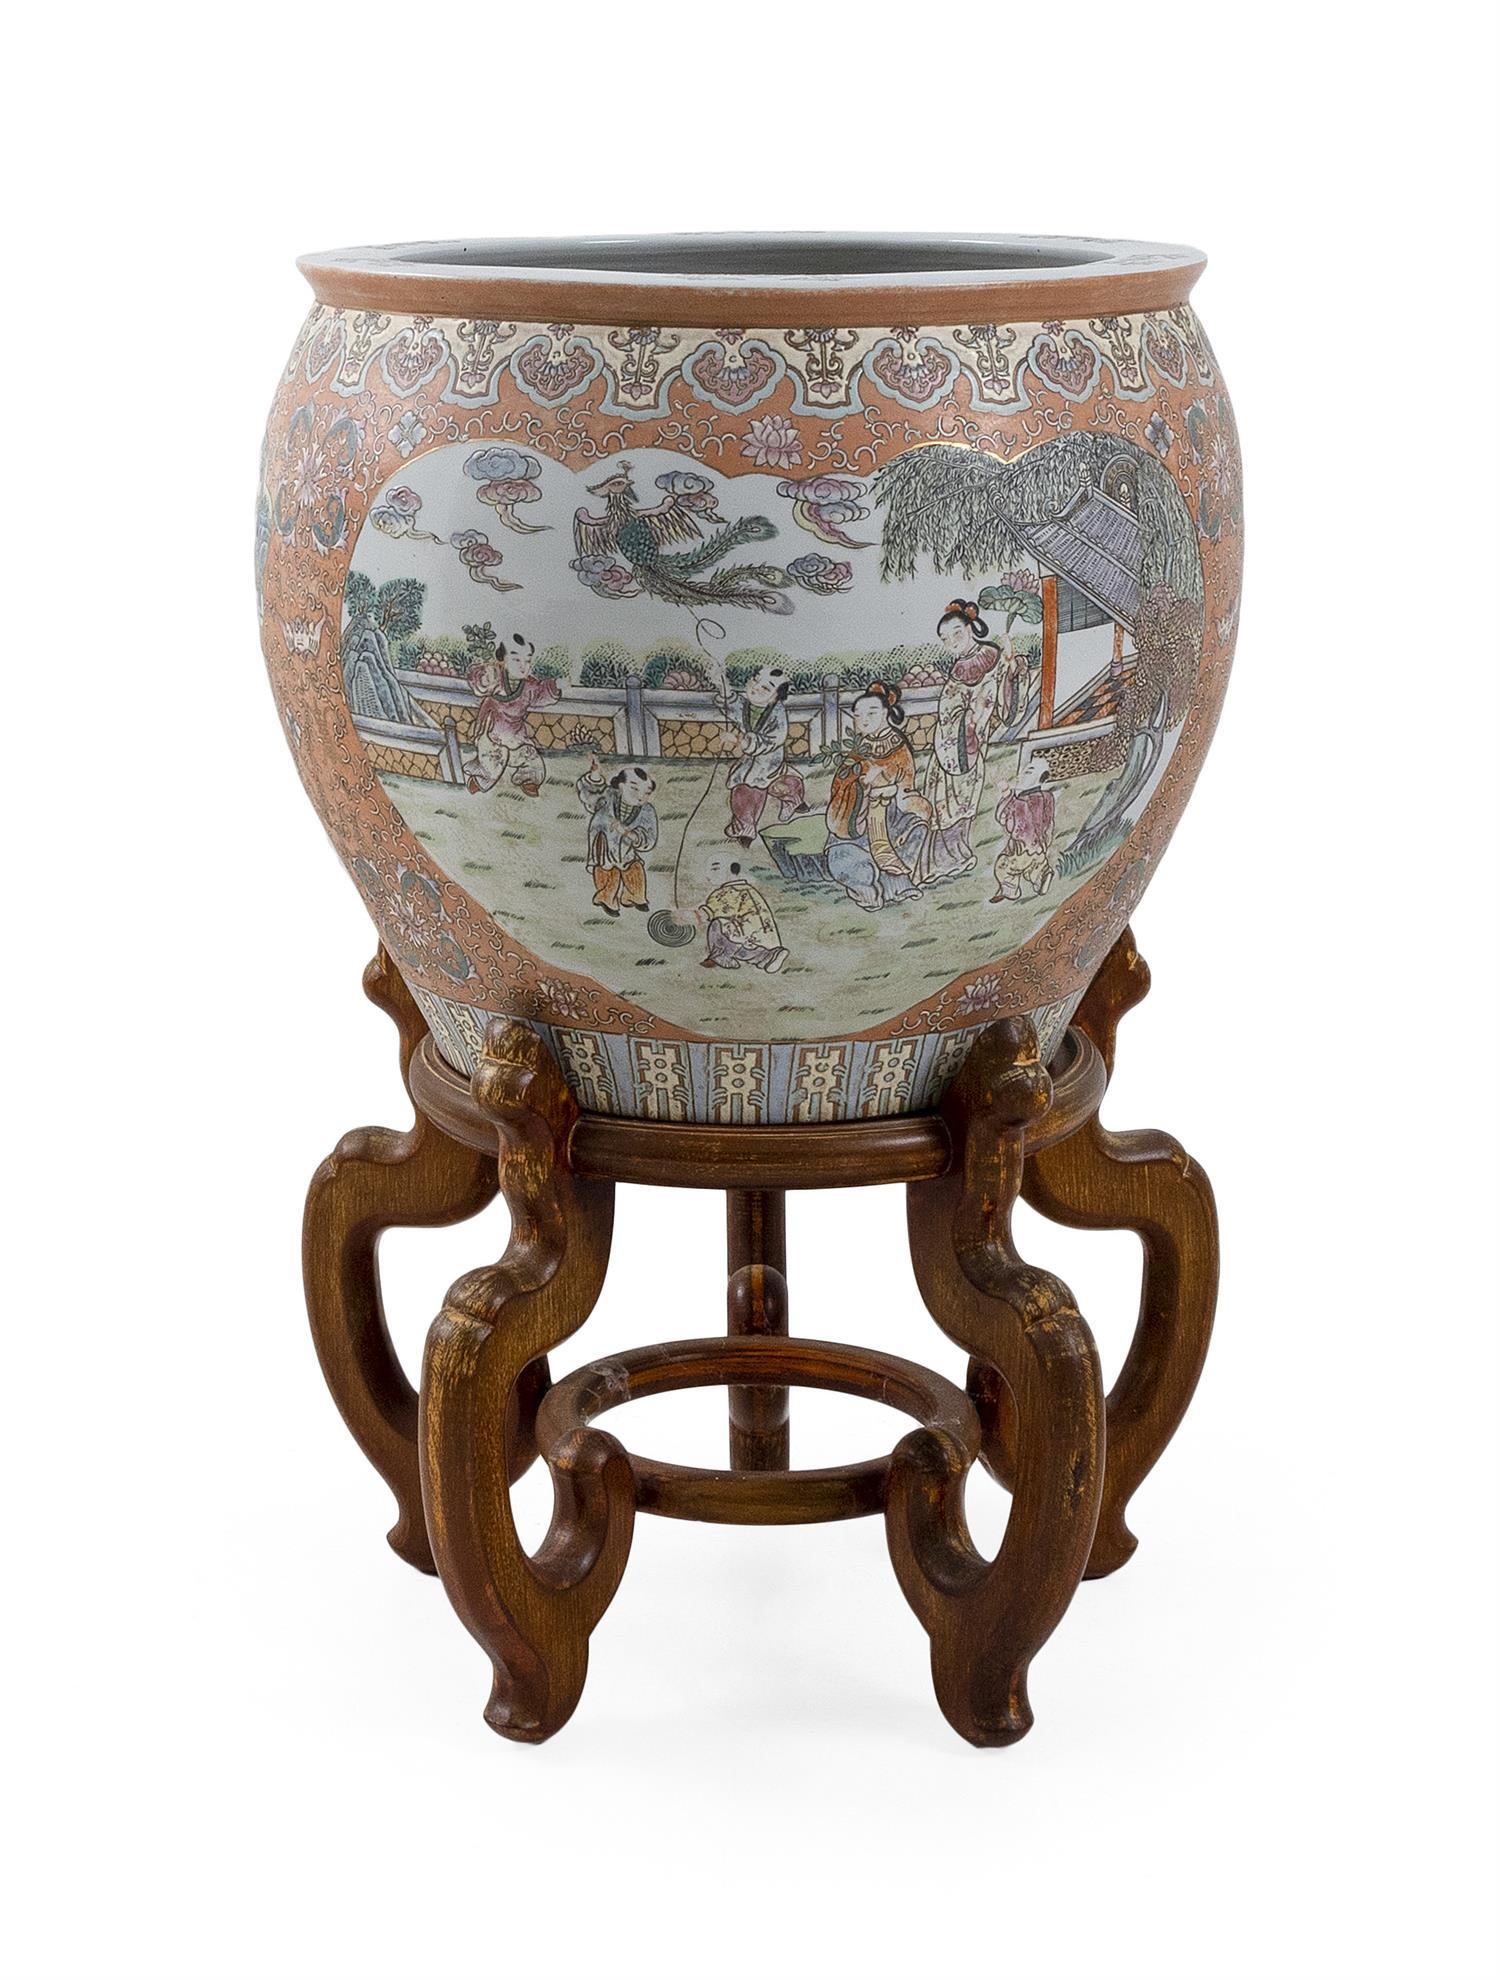 CHINESE PORCELAIN FISH BOWL Exterior with figural scenes against a peach-colored ground. Interior with goldfish and aquatic vegetati...